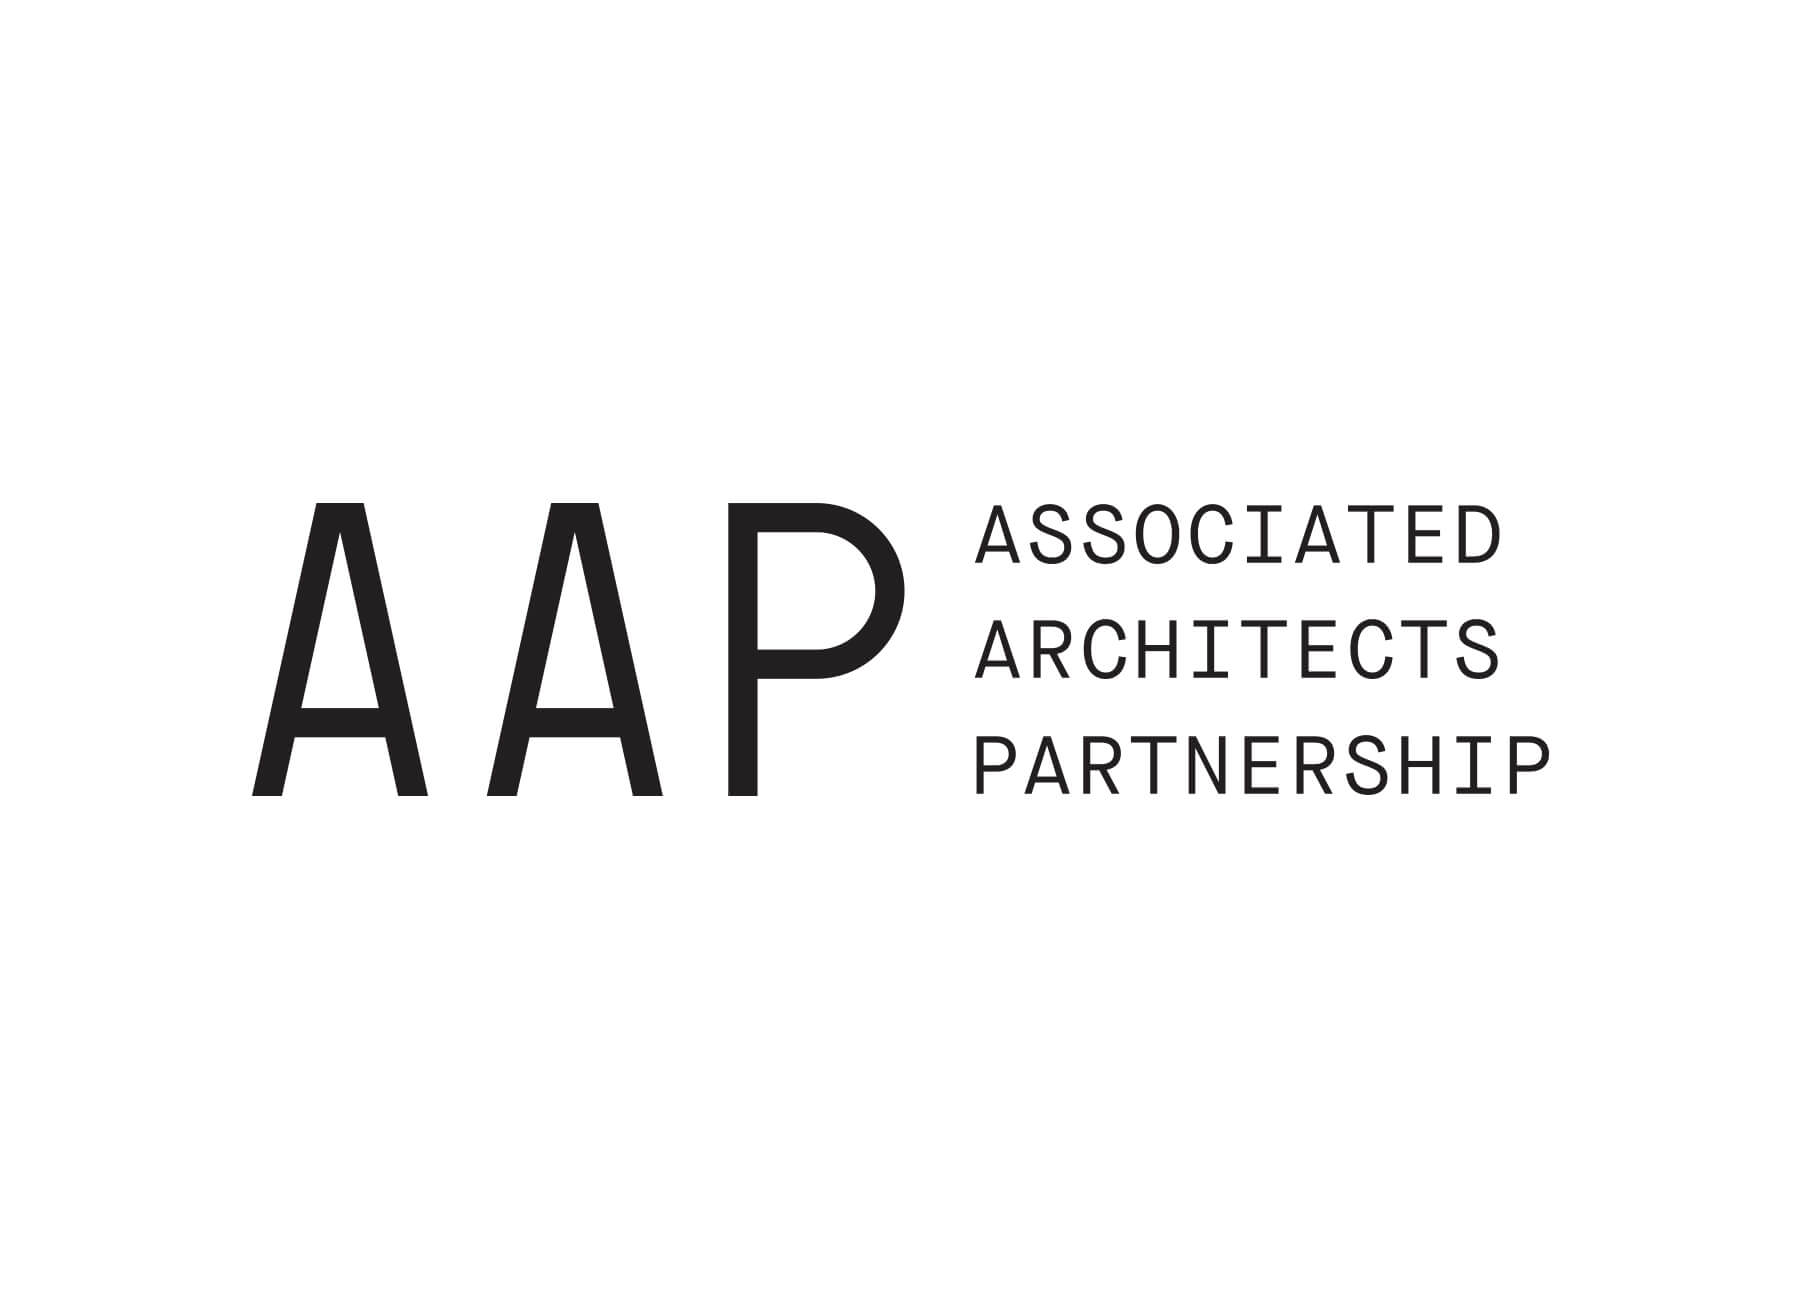 AAP Associated Architects Partnership